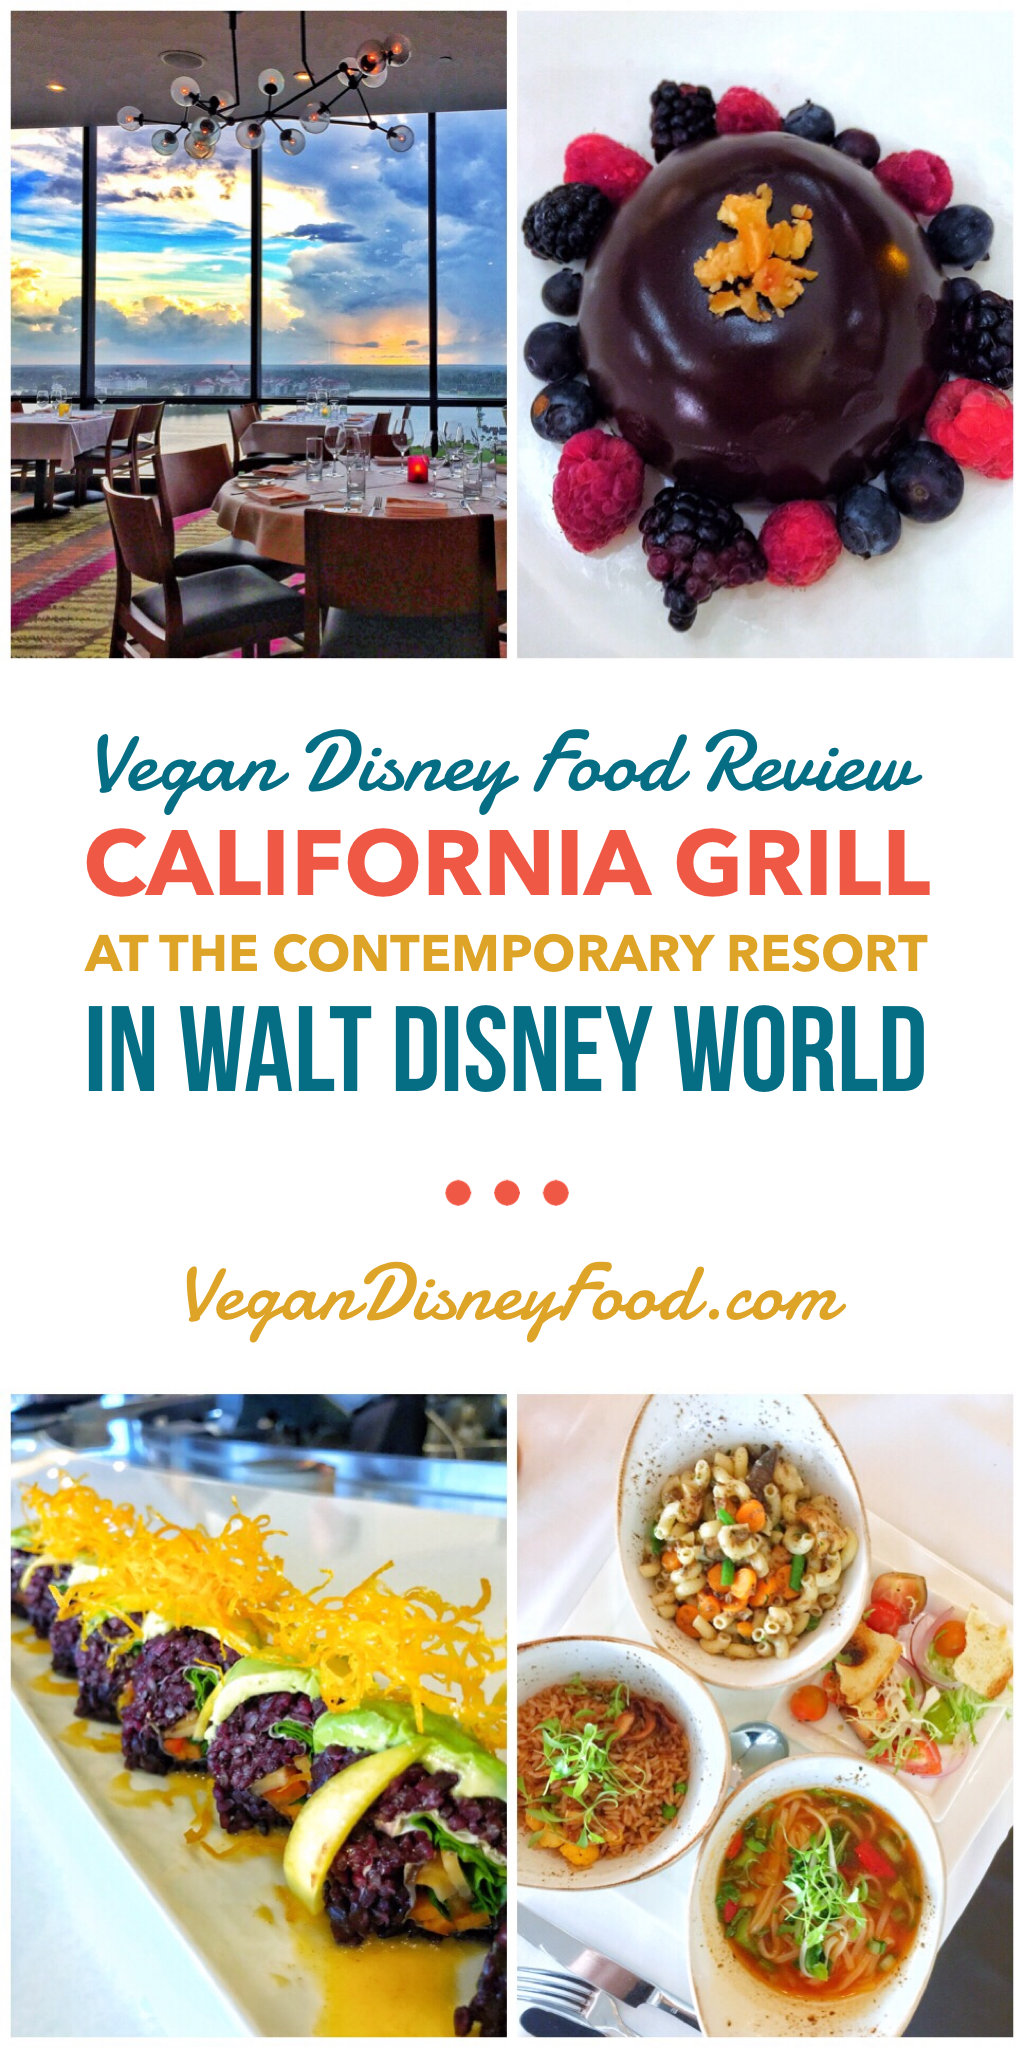 Vegan Disney Food Review: California Grill at the Contemporary Resort in Walt Disney World